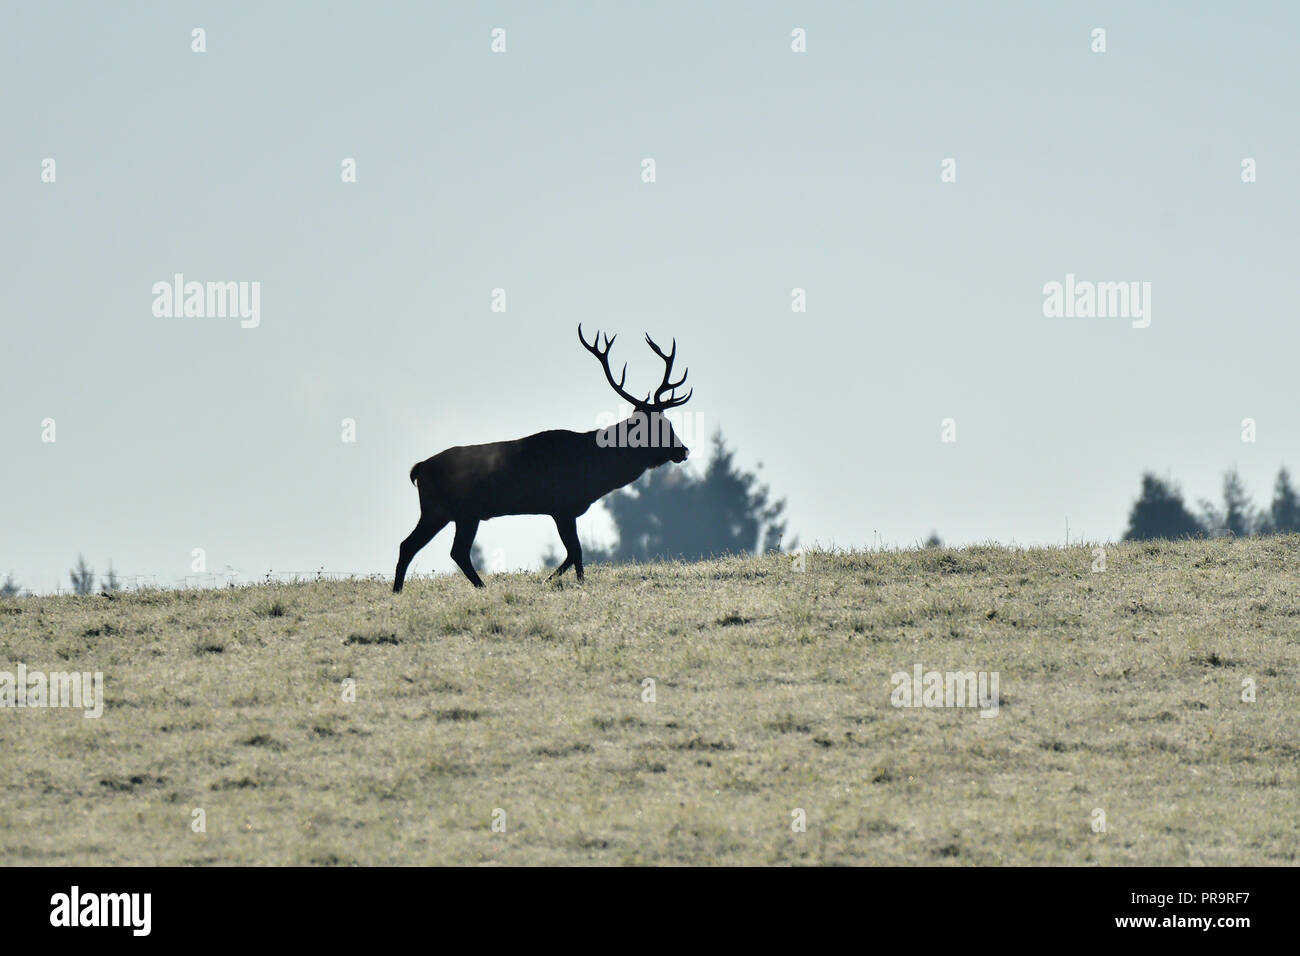 contour of silhouette of a deer with antlers on the horizont - Stock Image